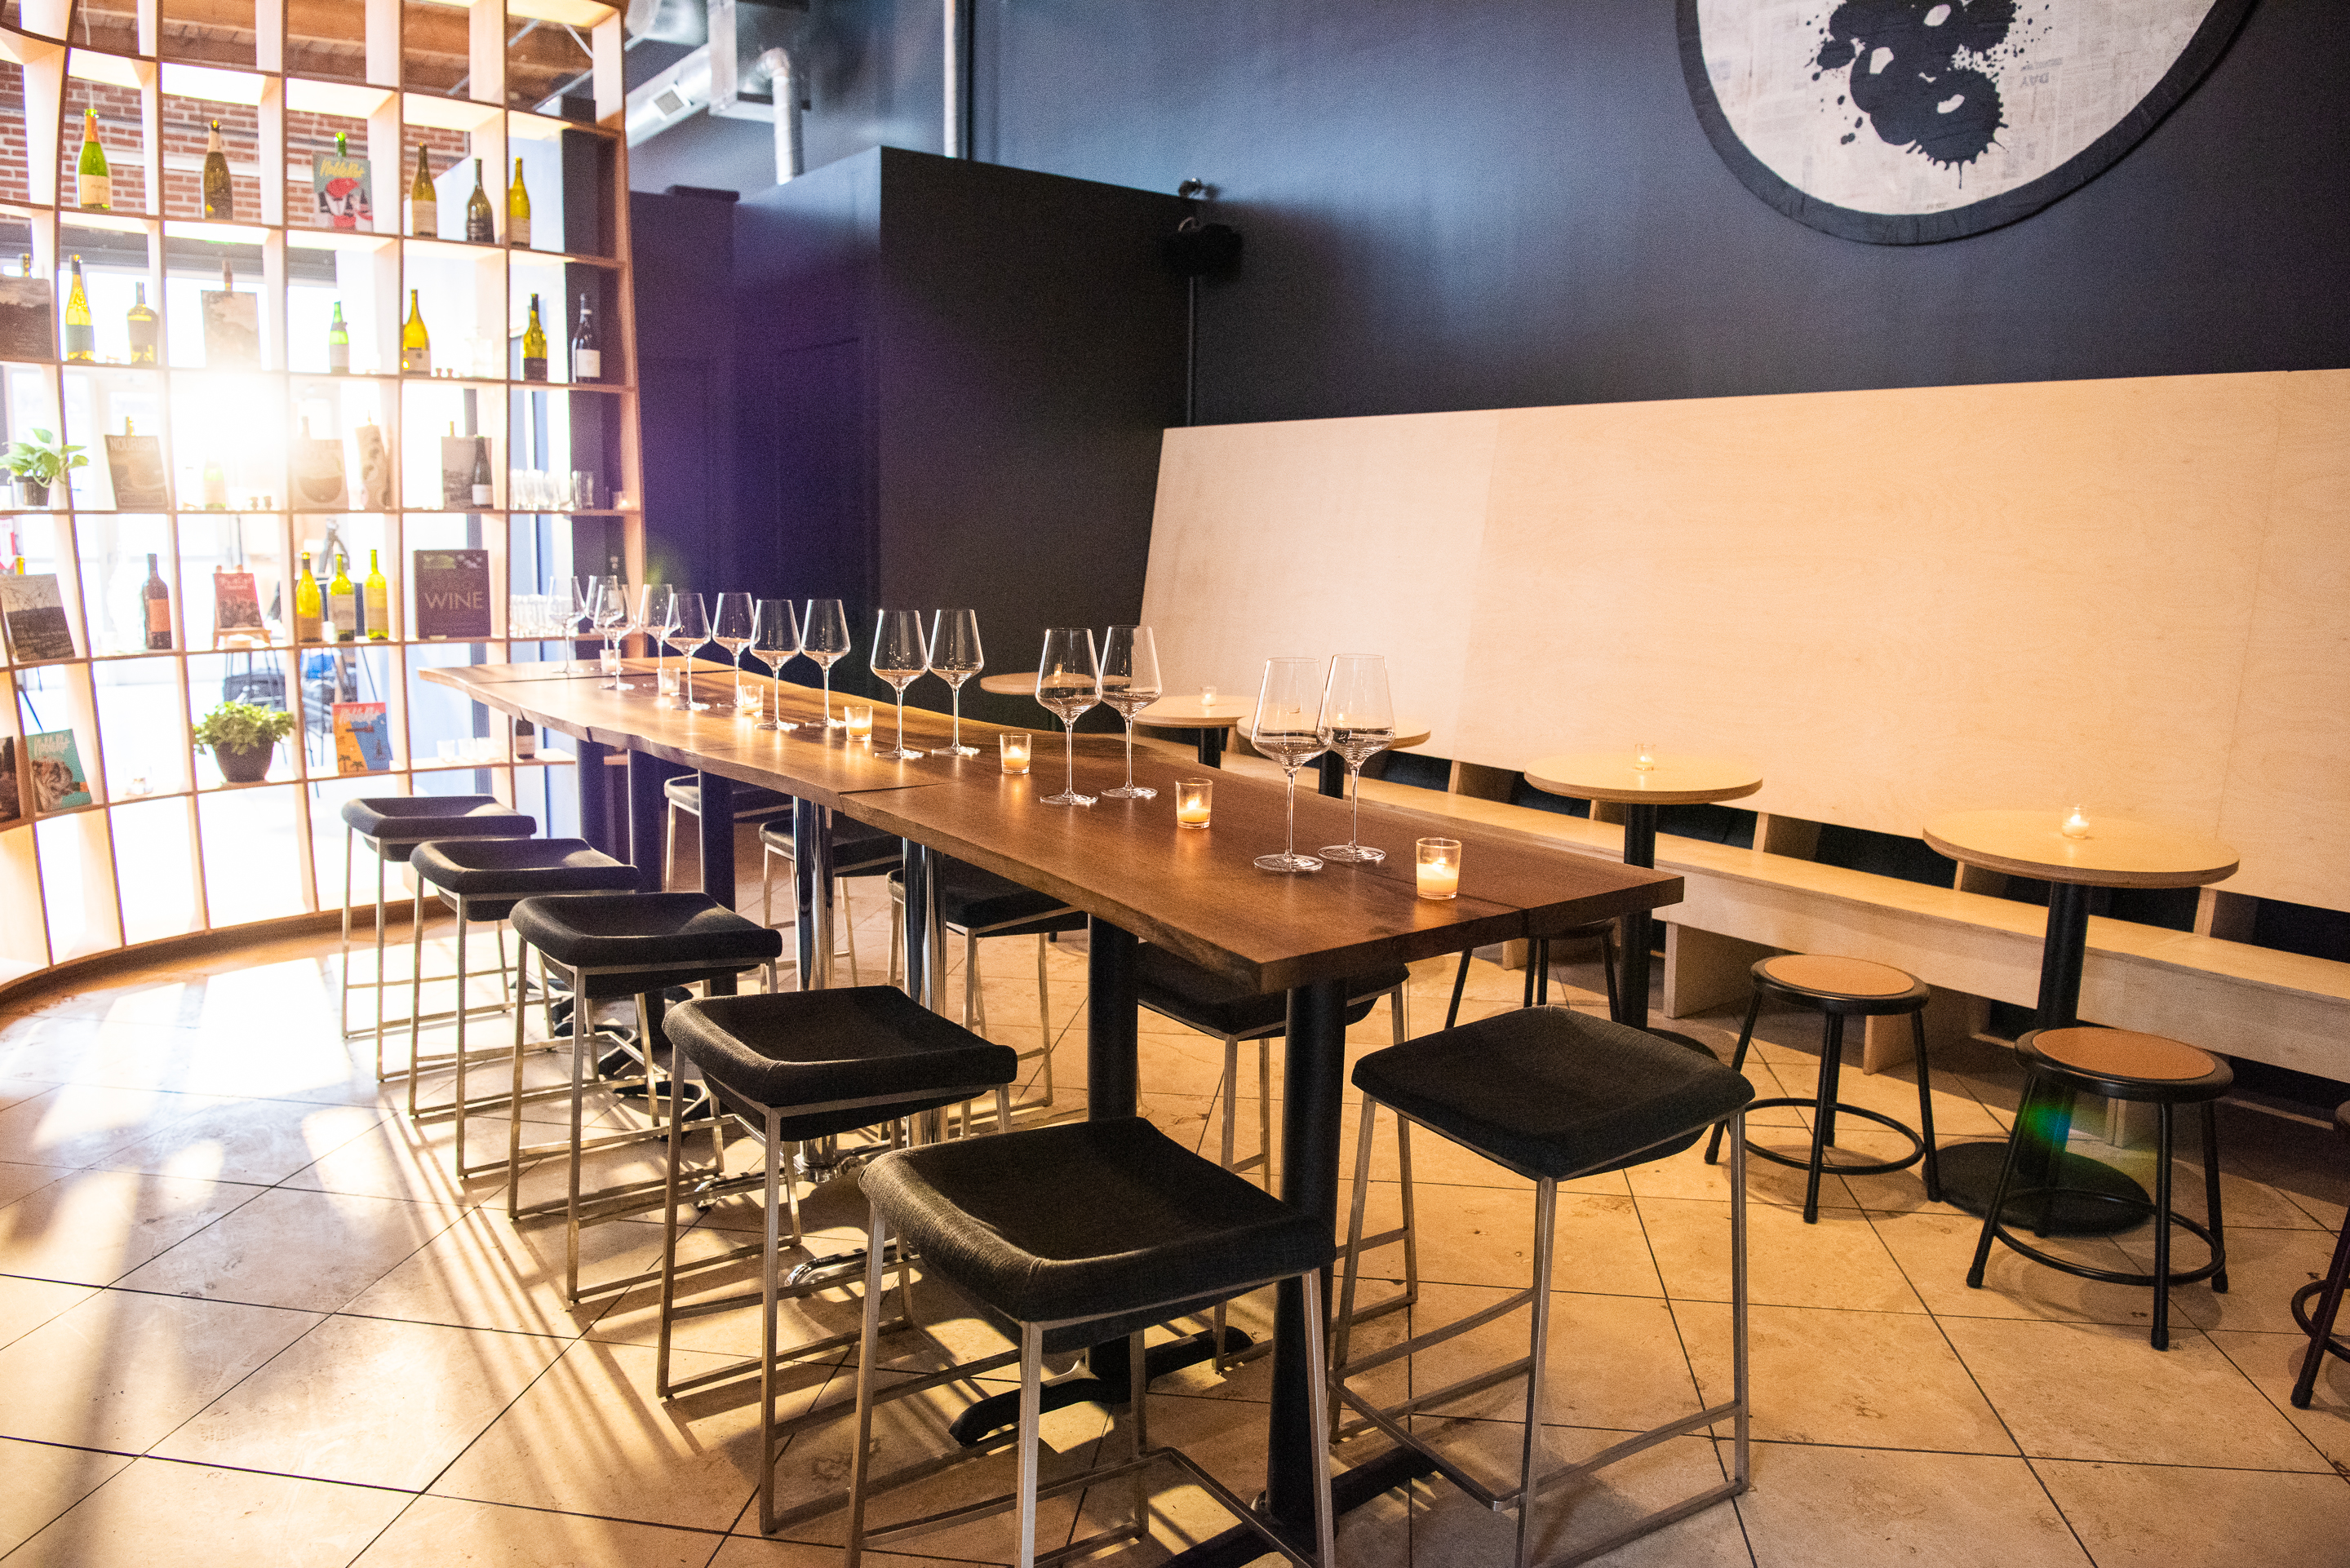 Wine bar with communal table and curved shelving